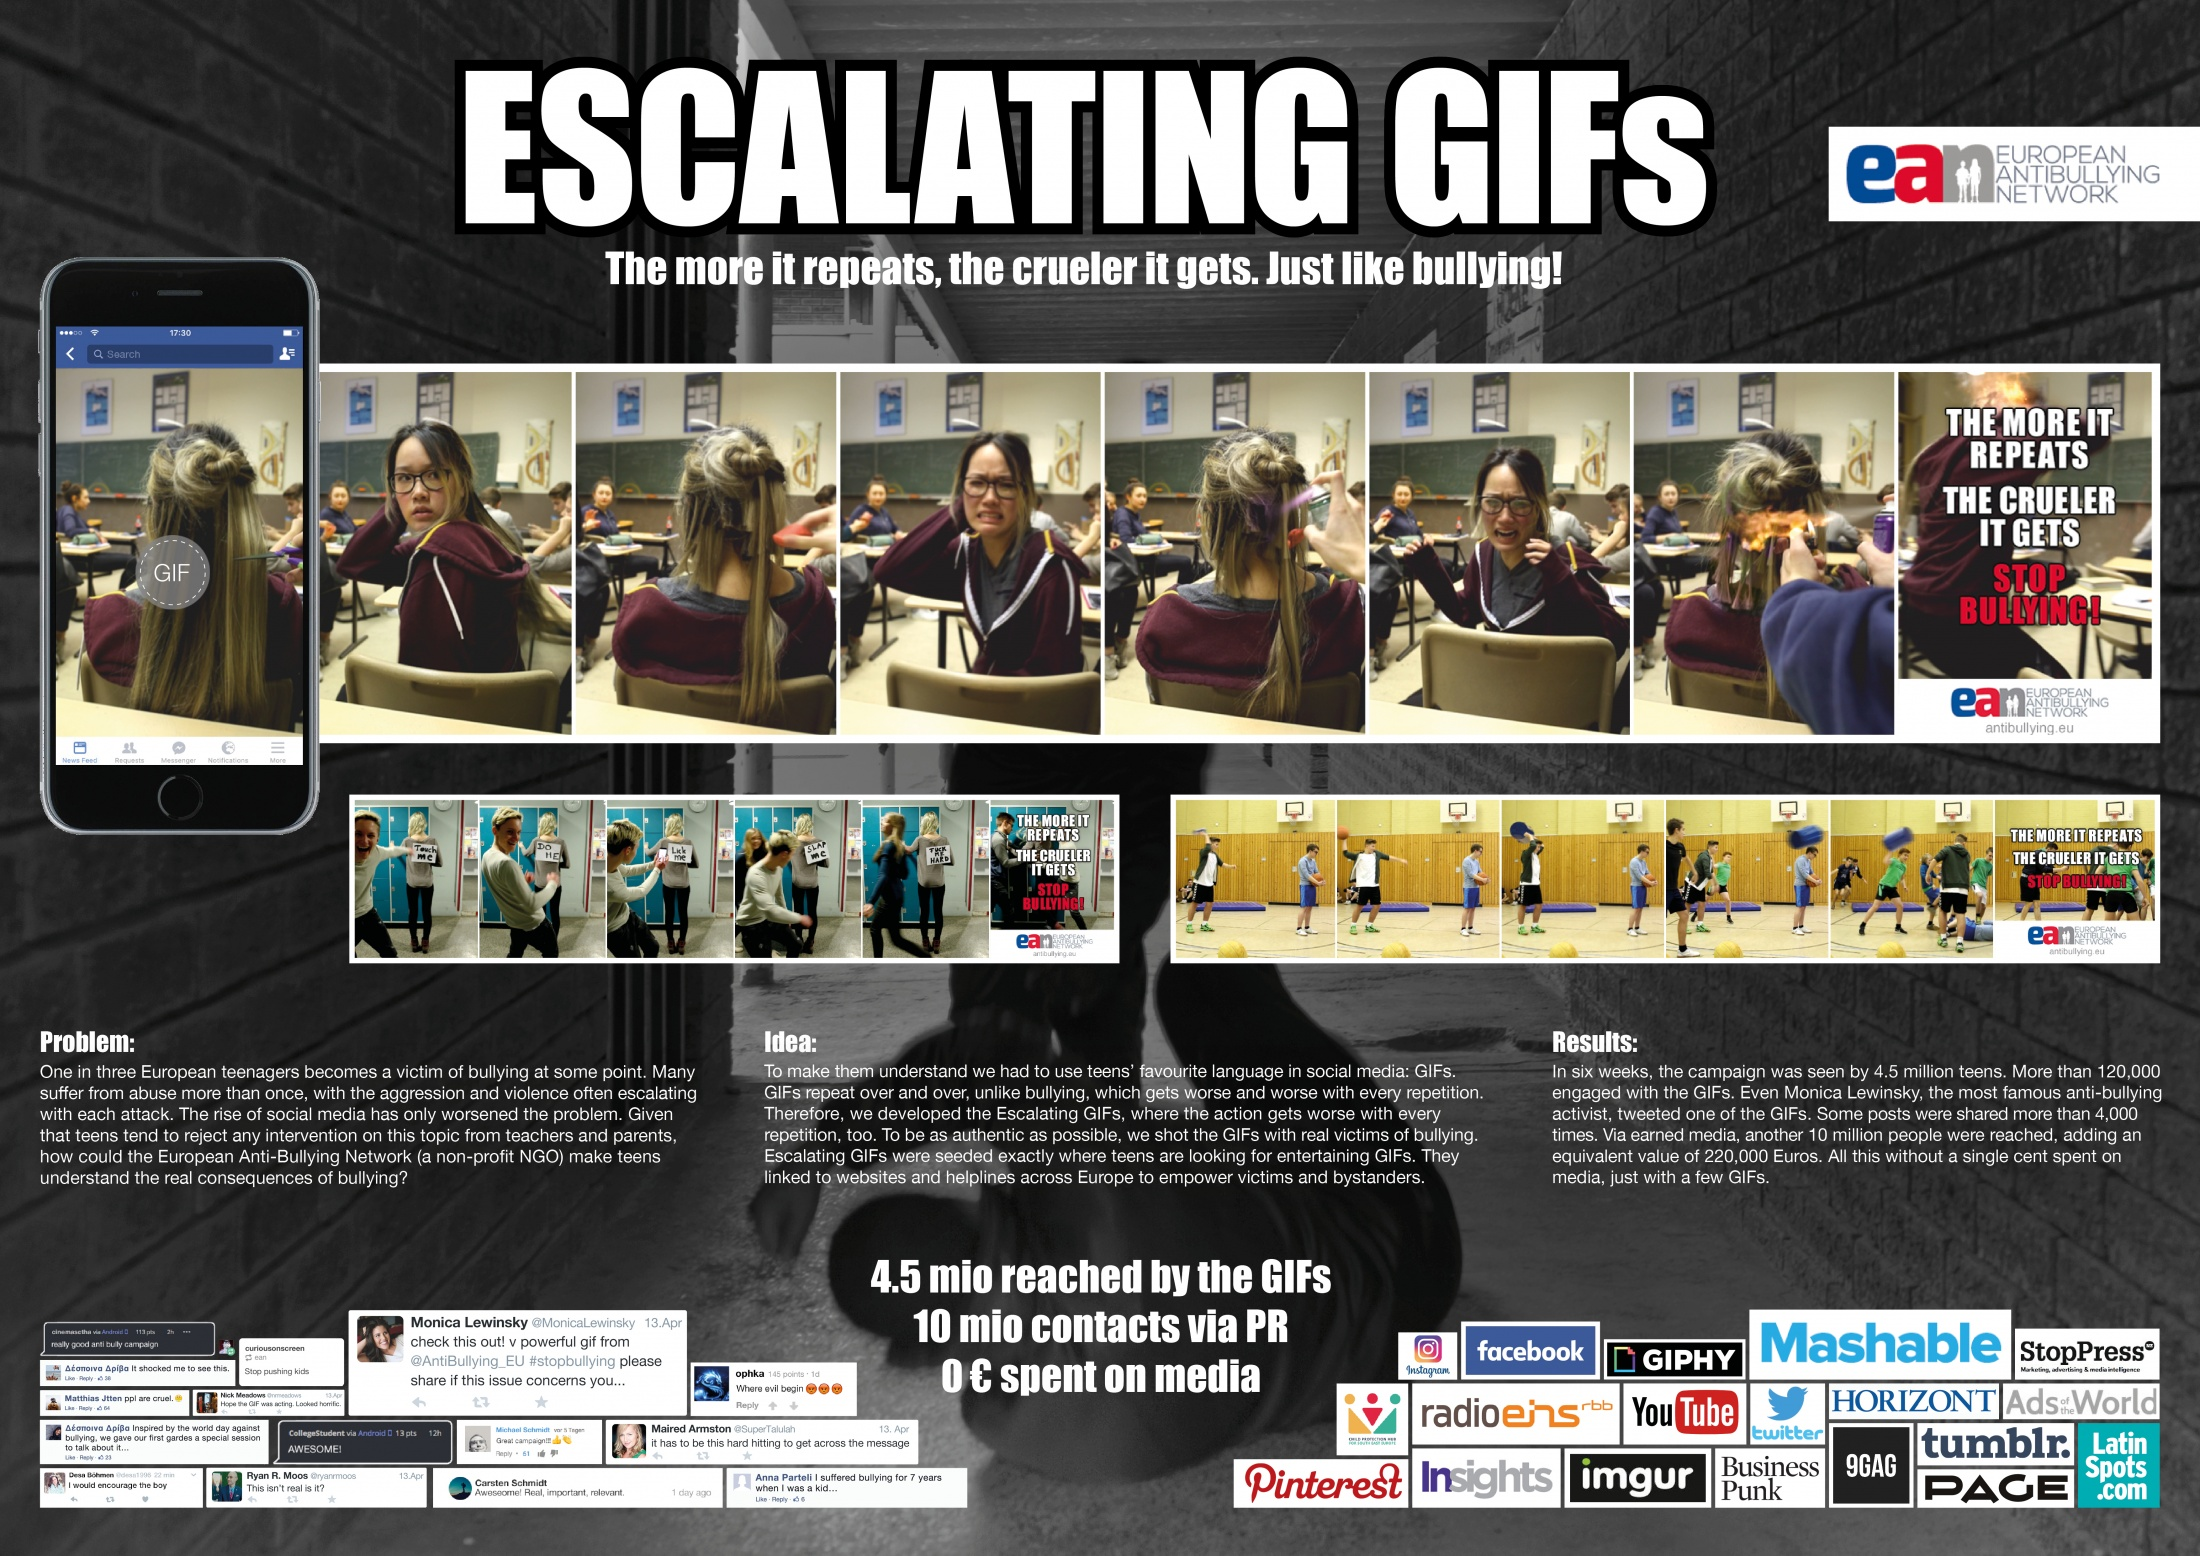 Image Media for Escalating GIFs